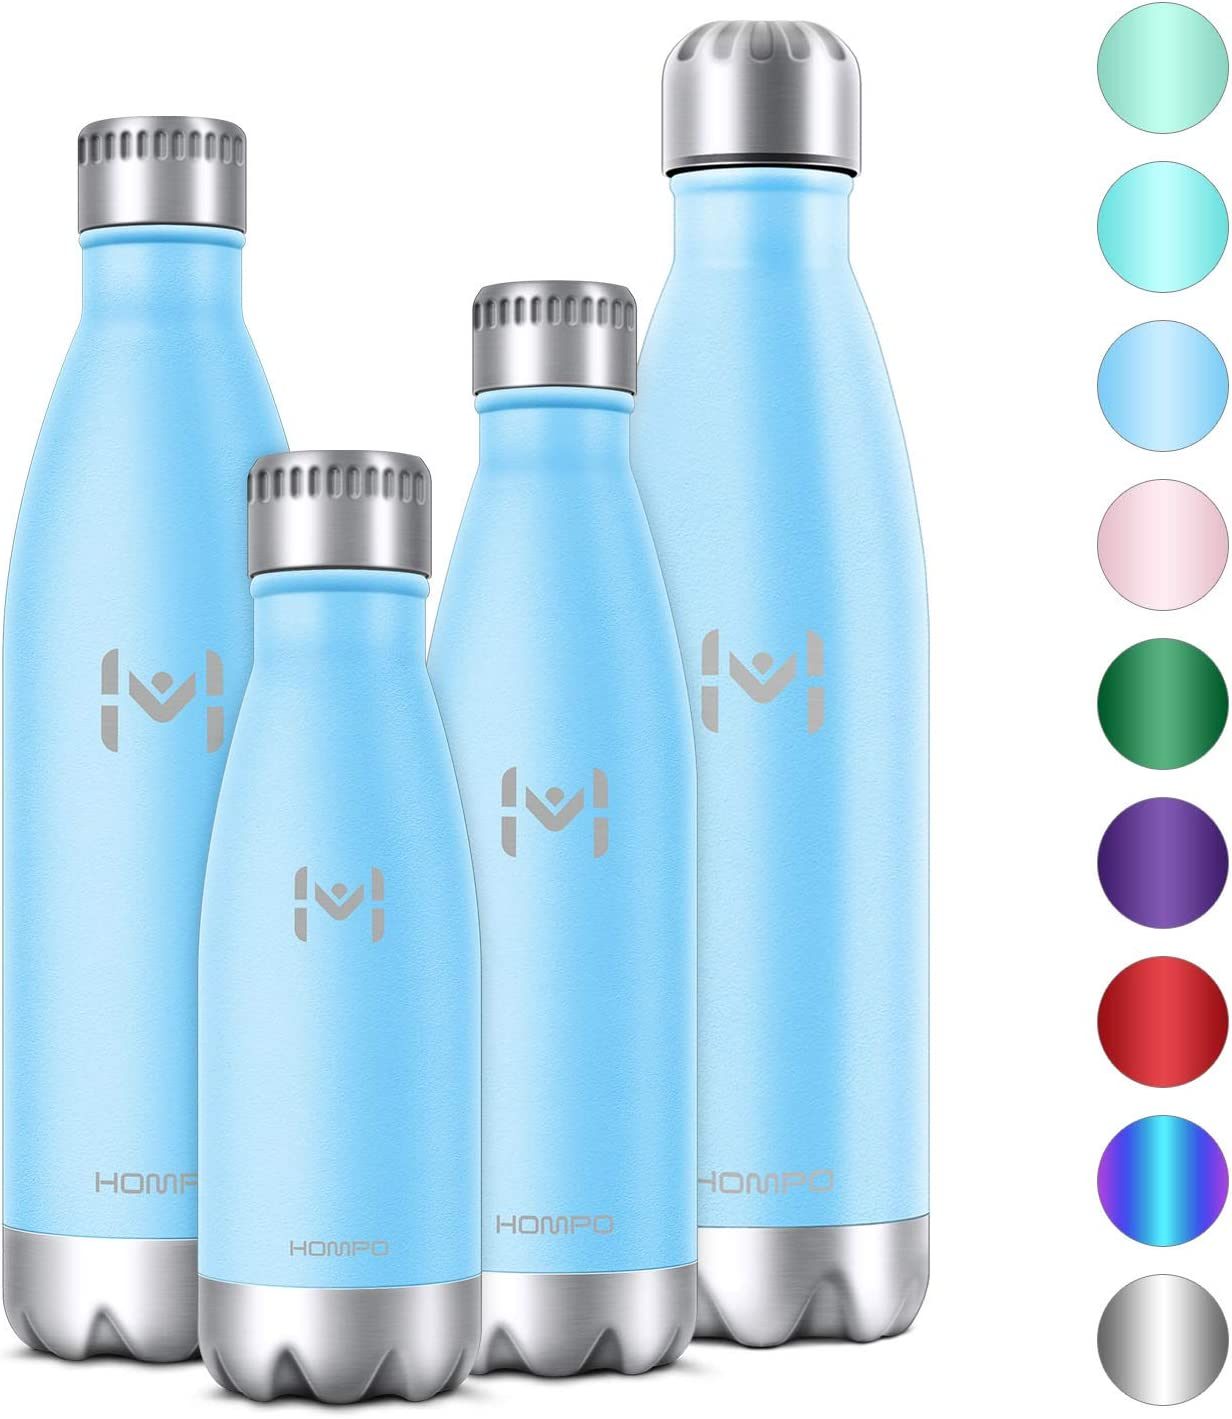 HOMPO Stainless Steel Water Bottle - 12/17/ 26/ 32oz BPA Free Vacuum Insulated Metal Reusable Water Bottle, Double Walled Keeps Hot & Cold Leak Proof Drinks Bottle for Kids, Sports, Gym